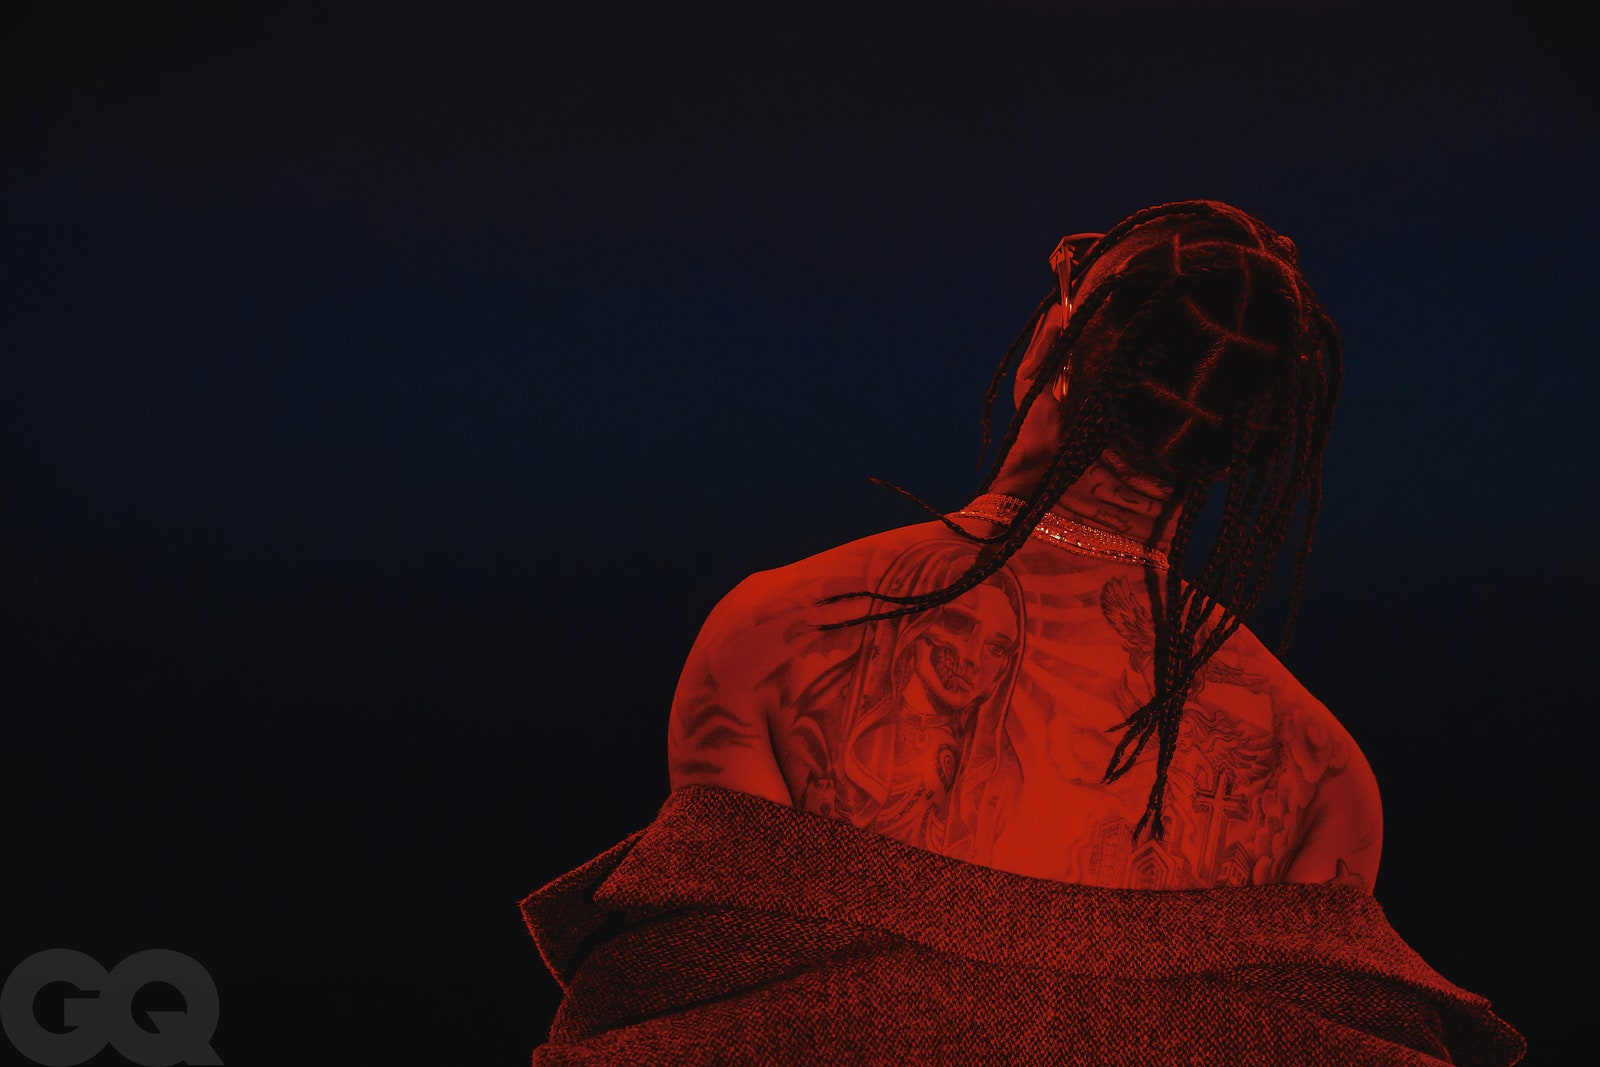 The World's First 'Tenet' Review Is In, And It's From Travis Scott